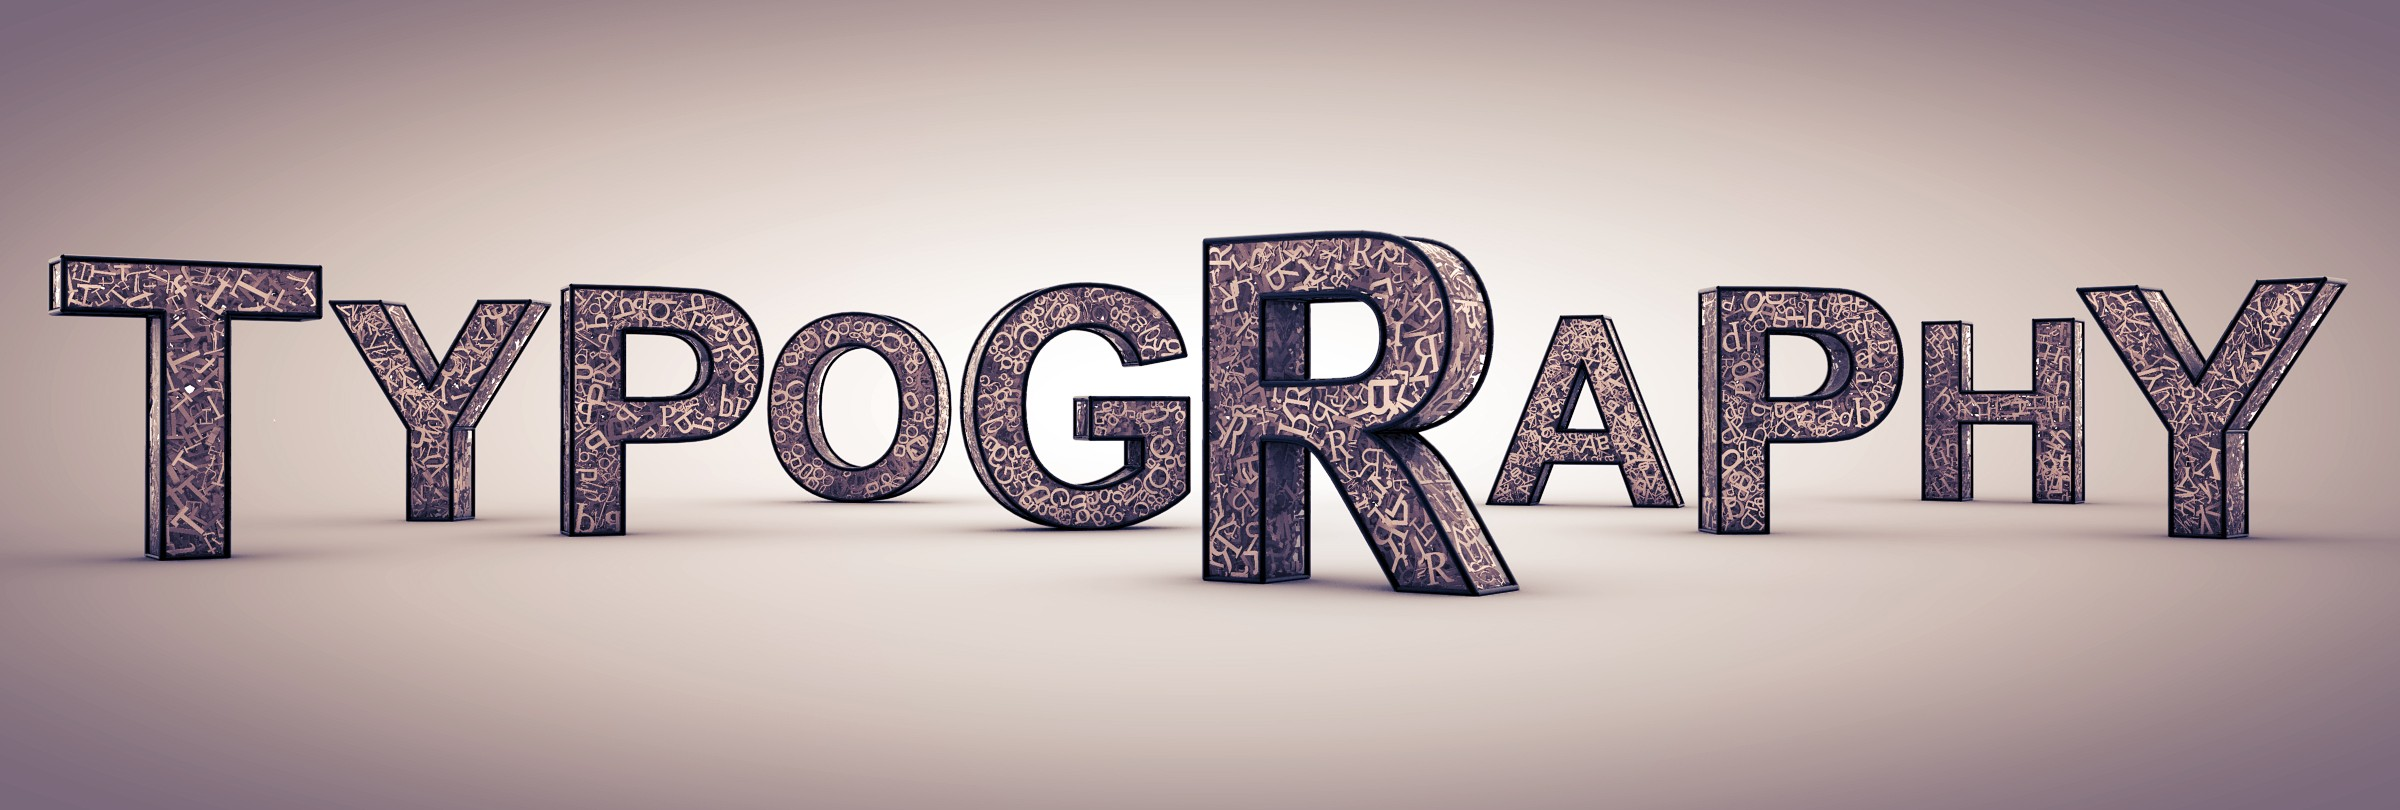 create awesome typography in any shape